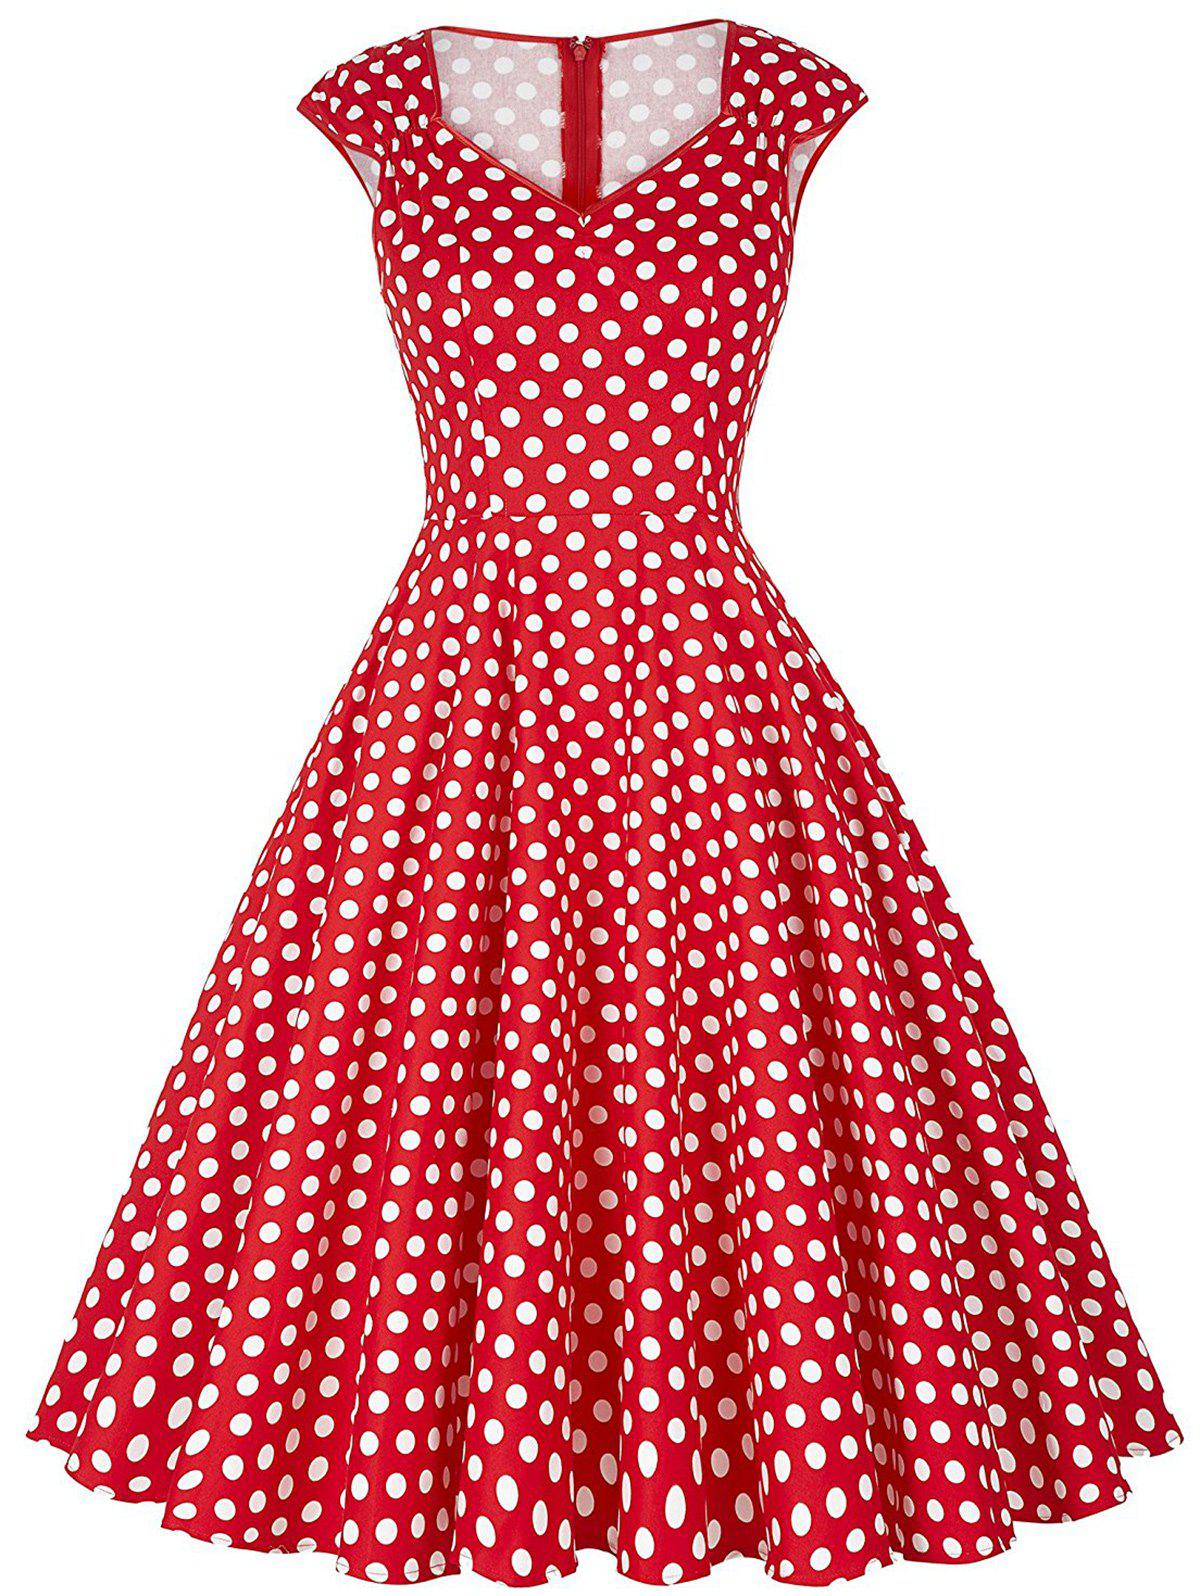 Discount Polka Dot Cap Sleeve Party Dress